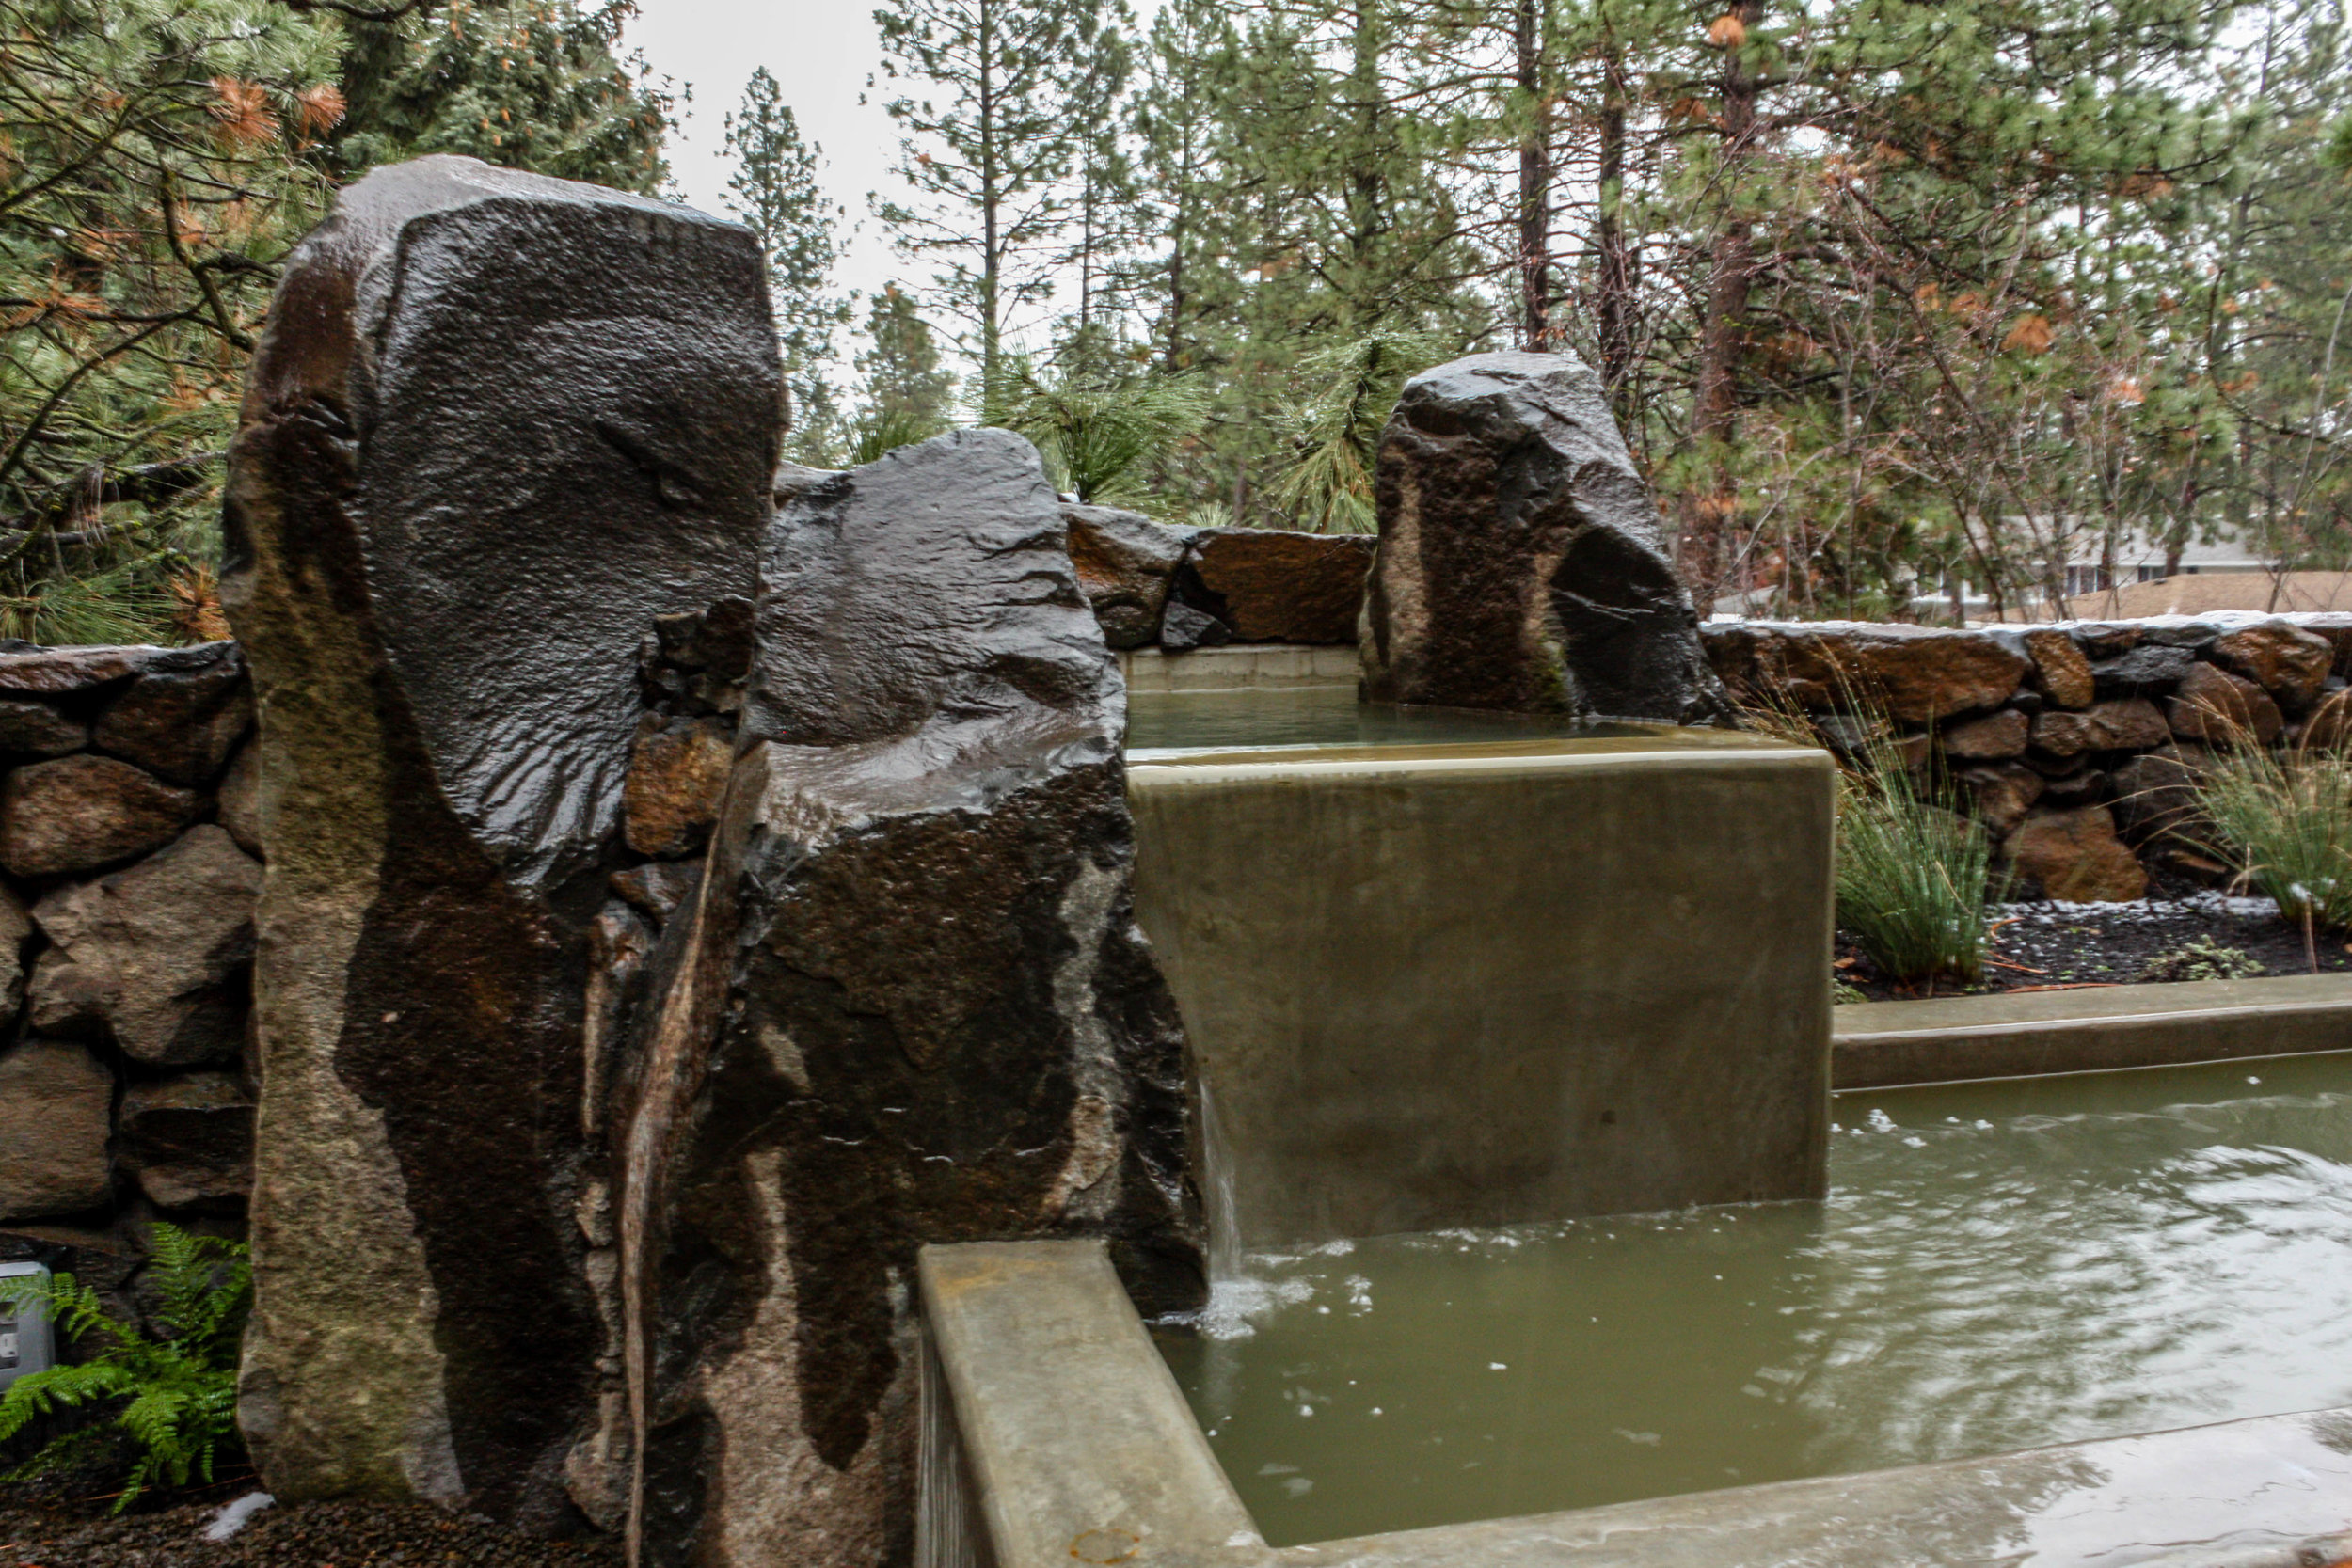 spokane south hill basalt column and poured concrete water feature